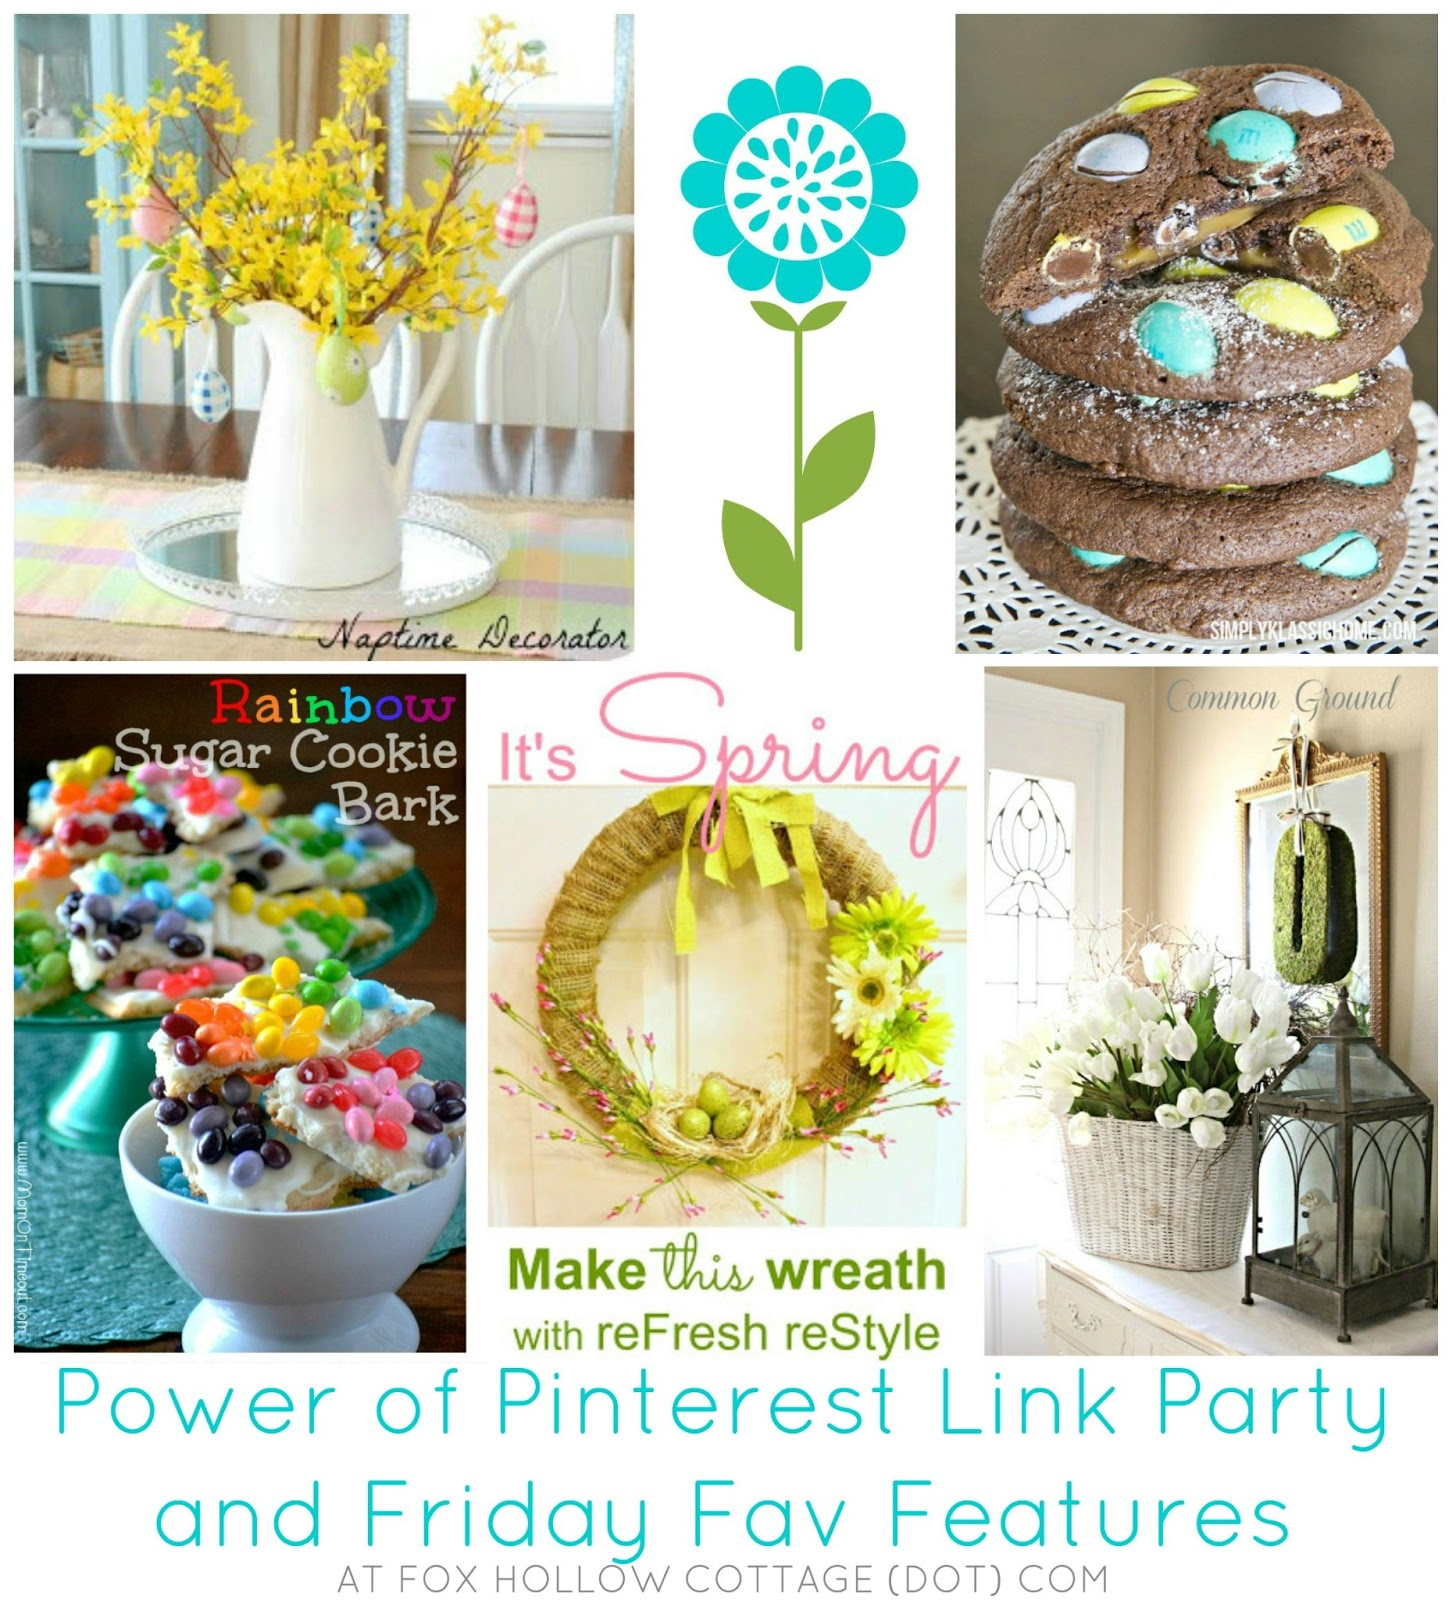 Power Of Pinterest Link Party And Friday Fav Features